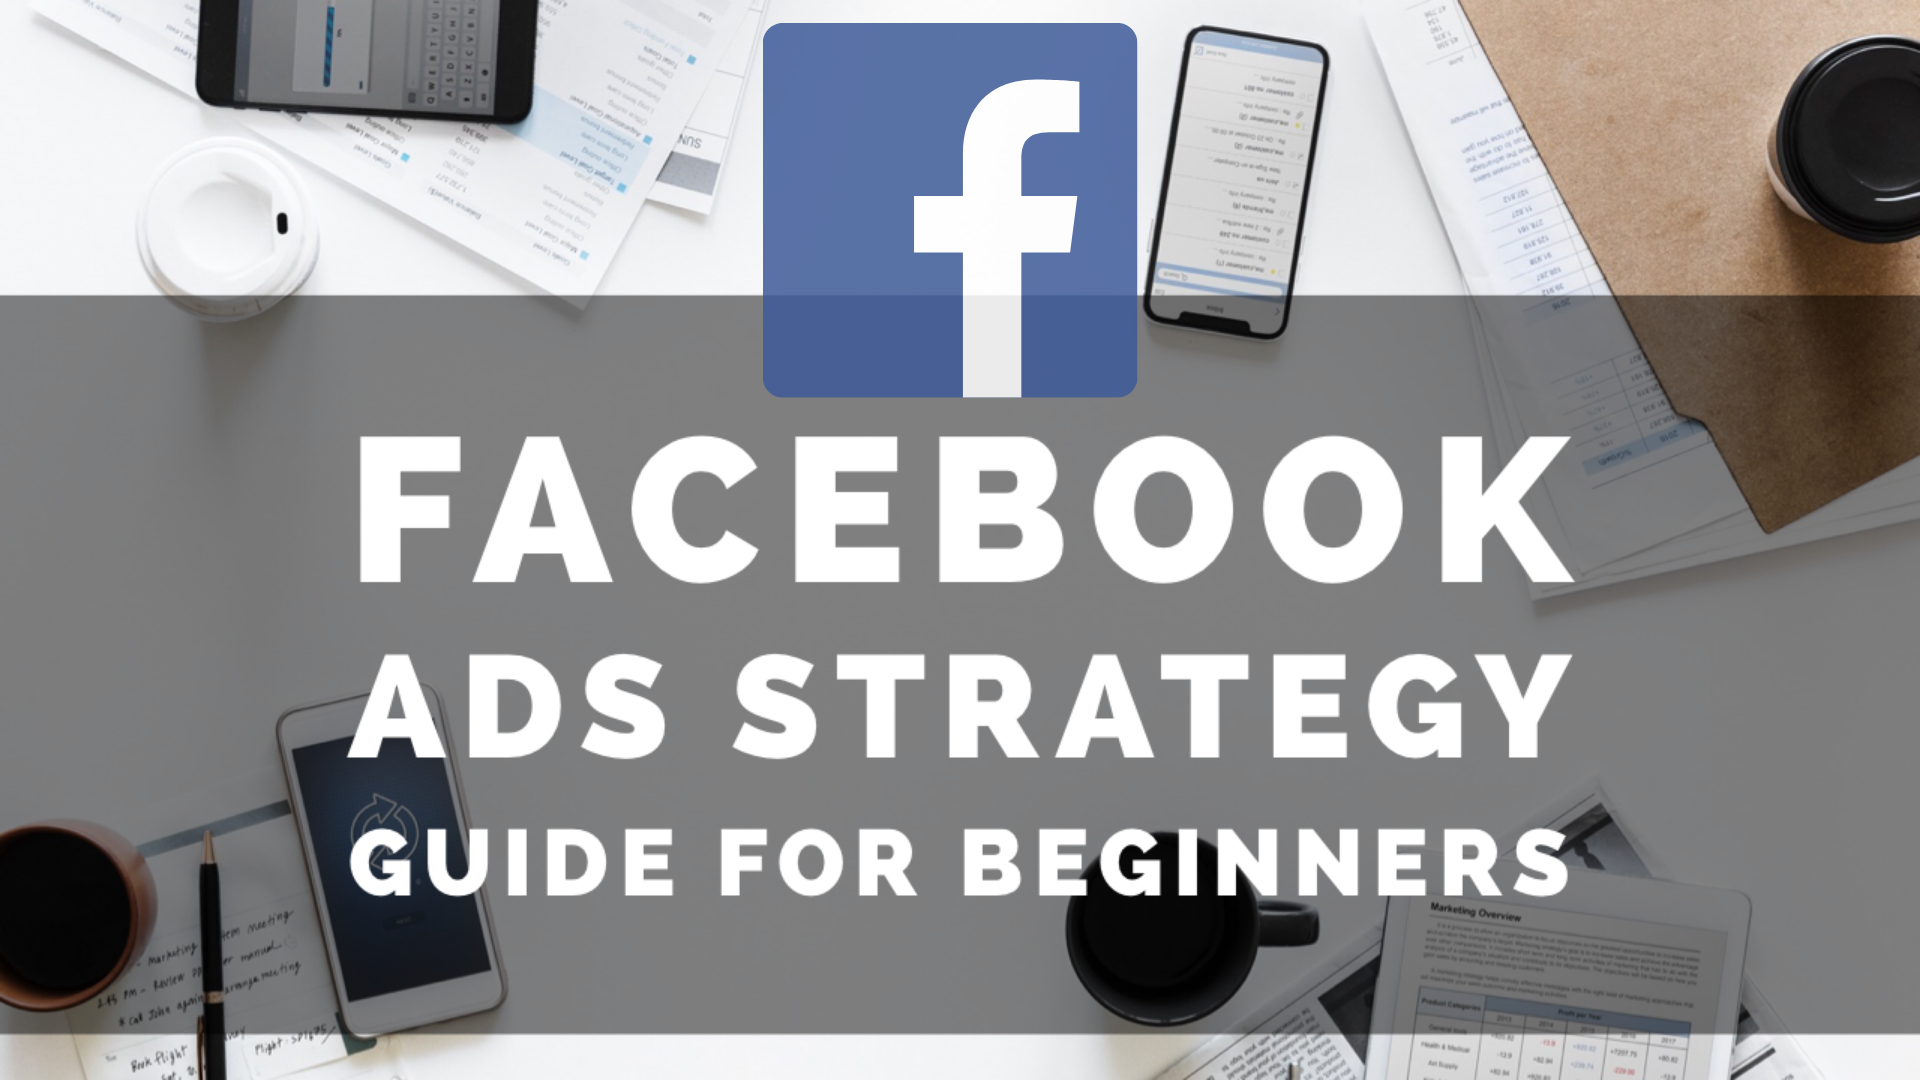 Facebook ads strategy guide for beginners